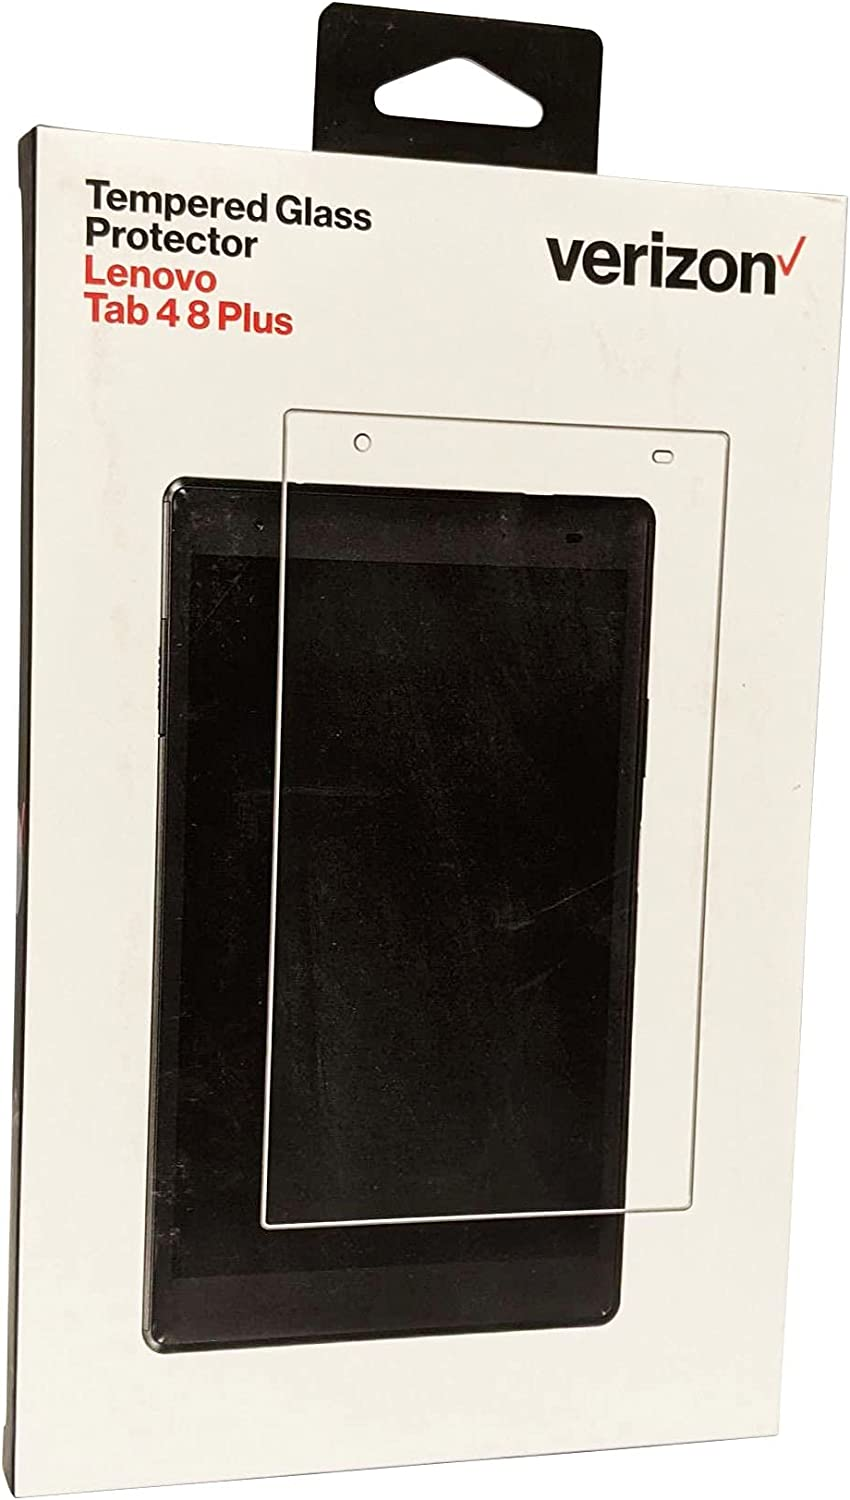 Verizon Tempered Glass Screen Display Protector for Lenovo Tab 4 8 Plus - Clear